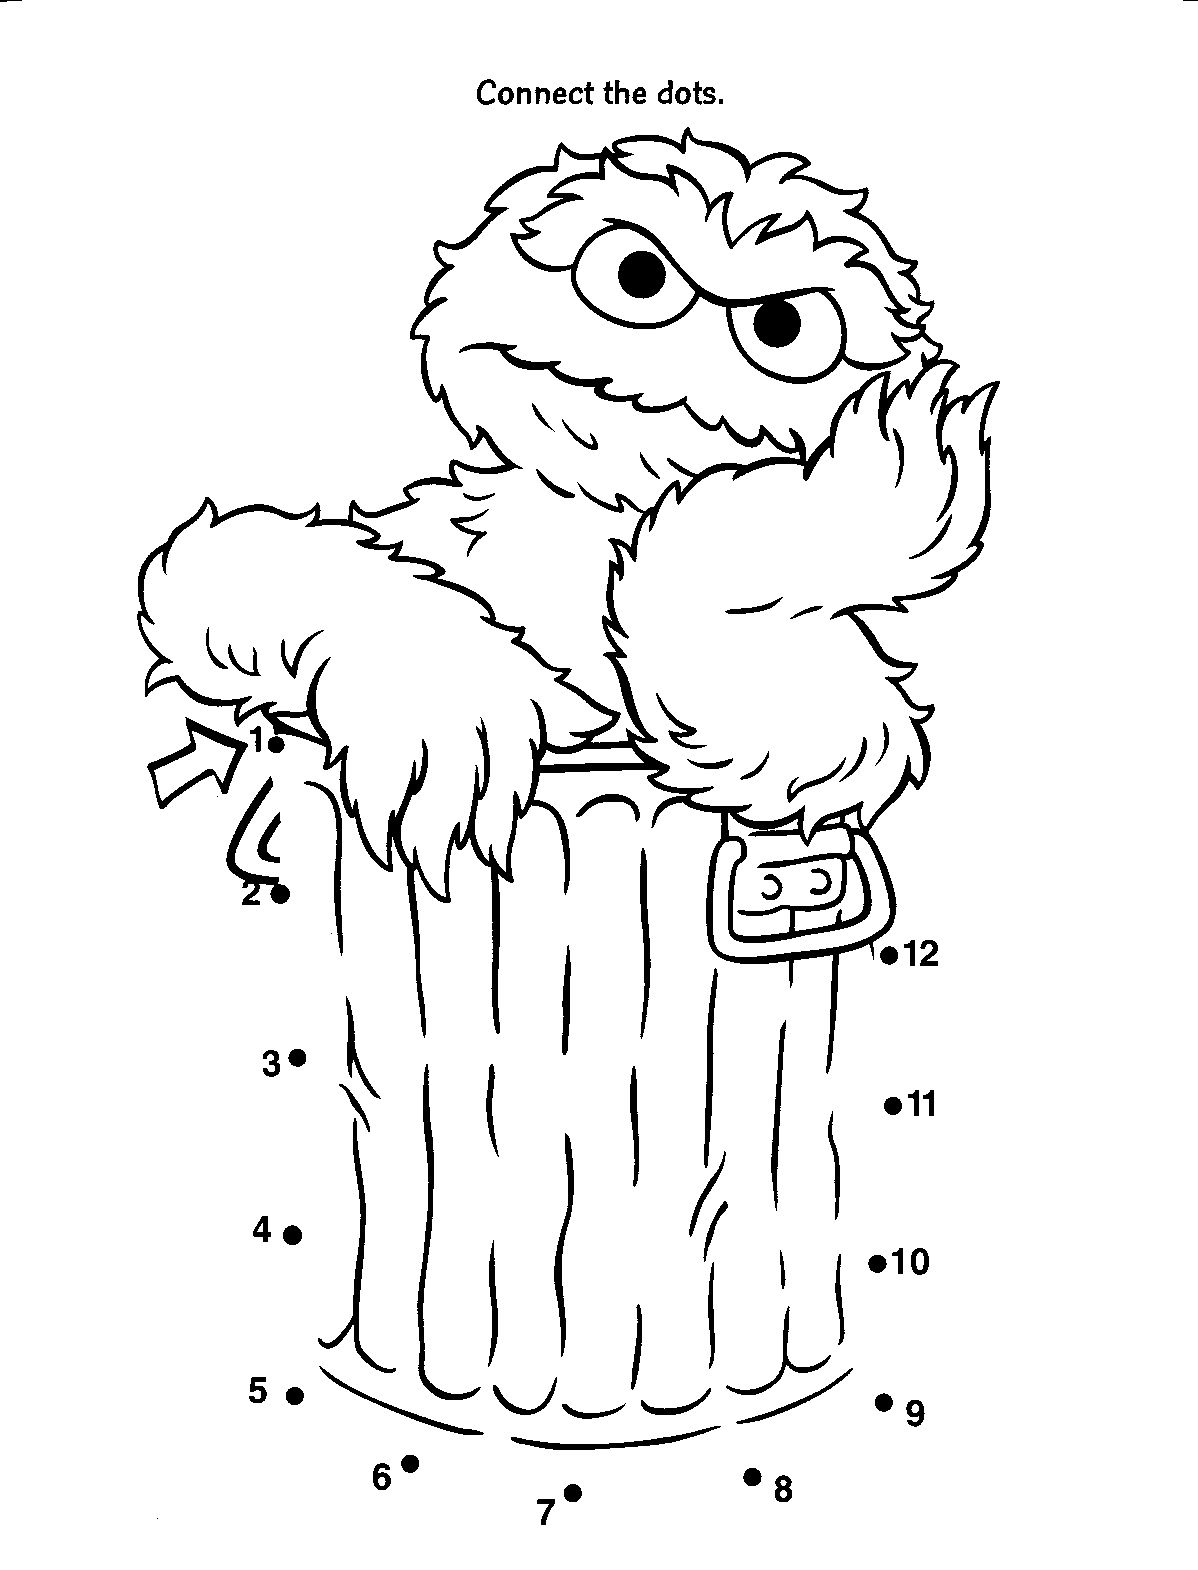 sesame street coloring pages - Bing Images | Coloring_Boys ...